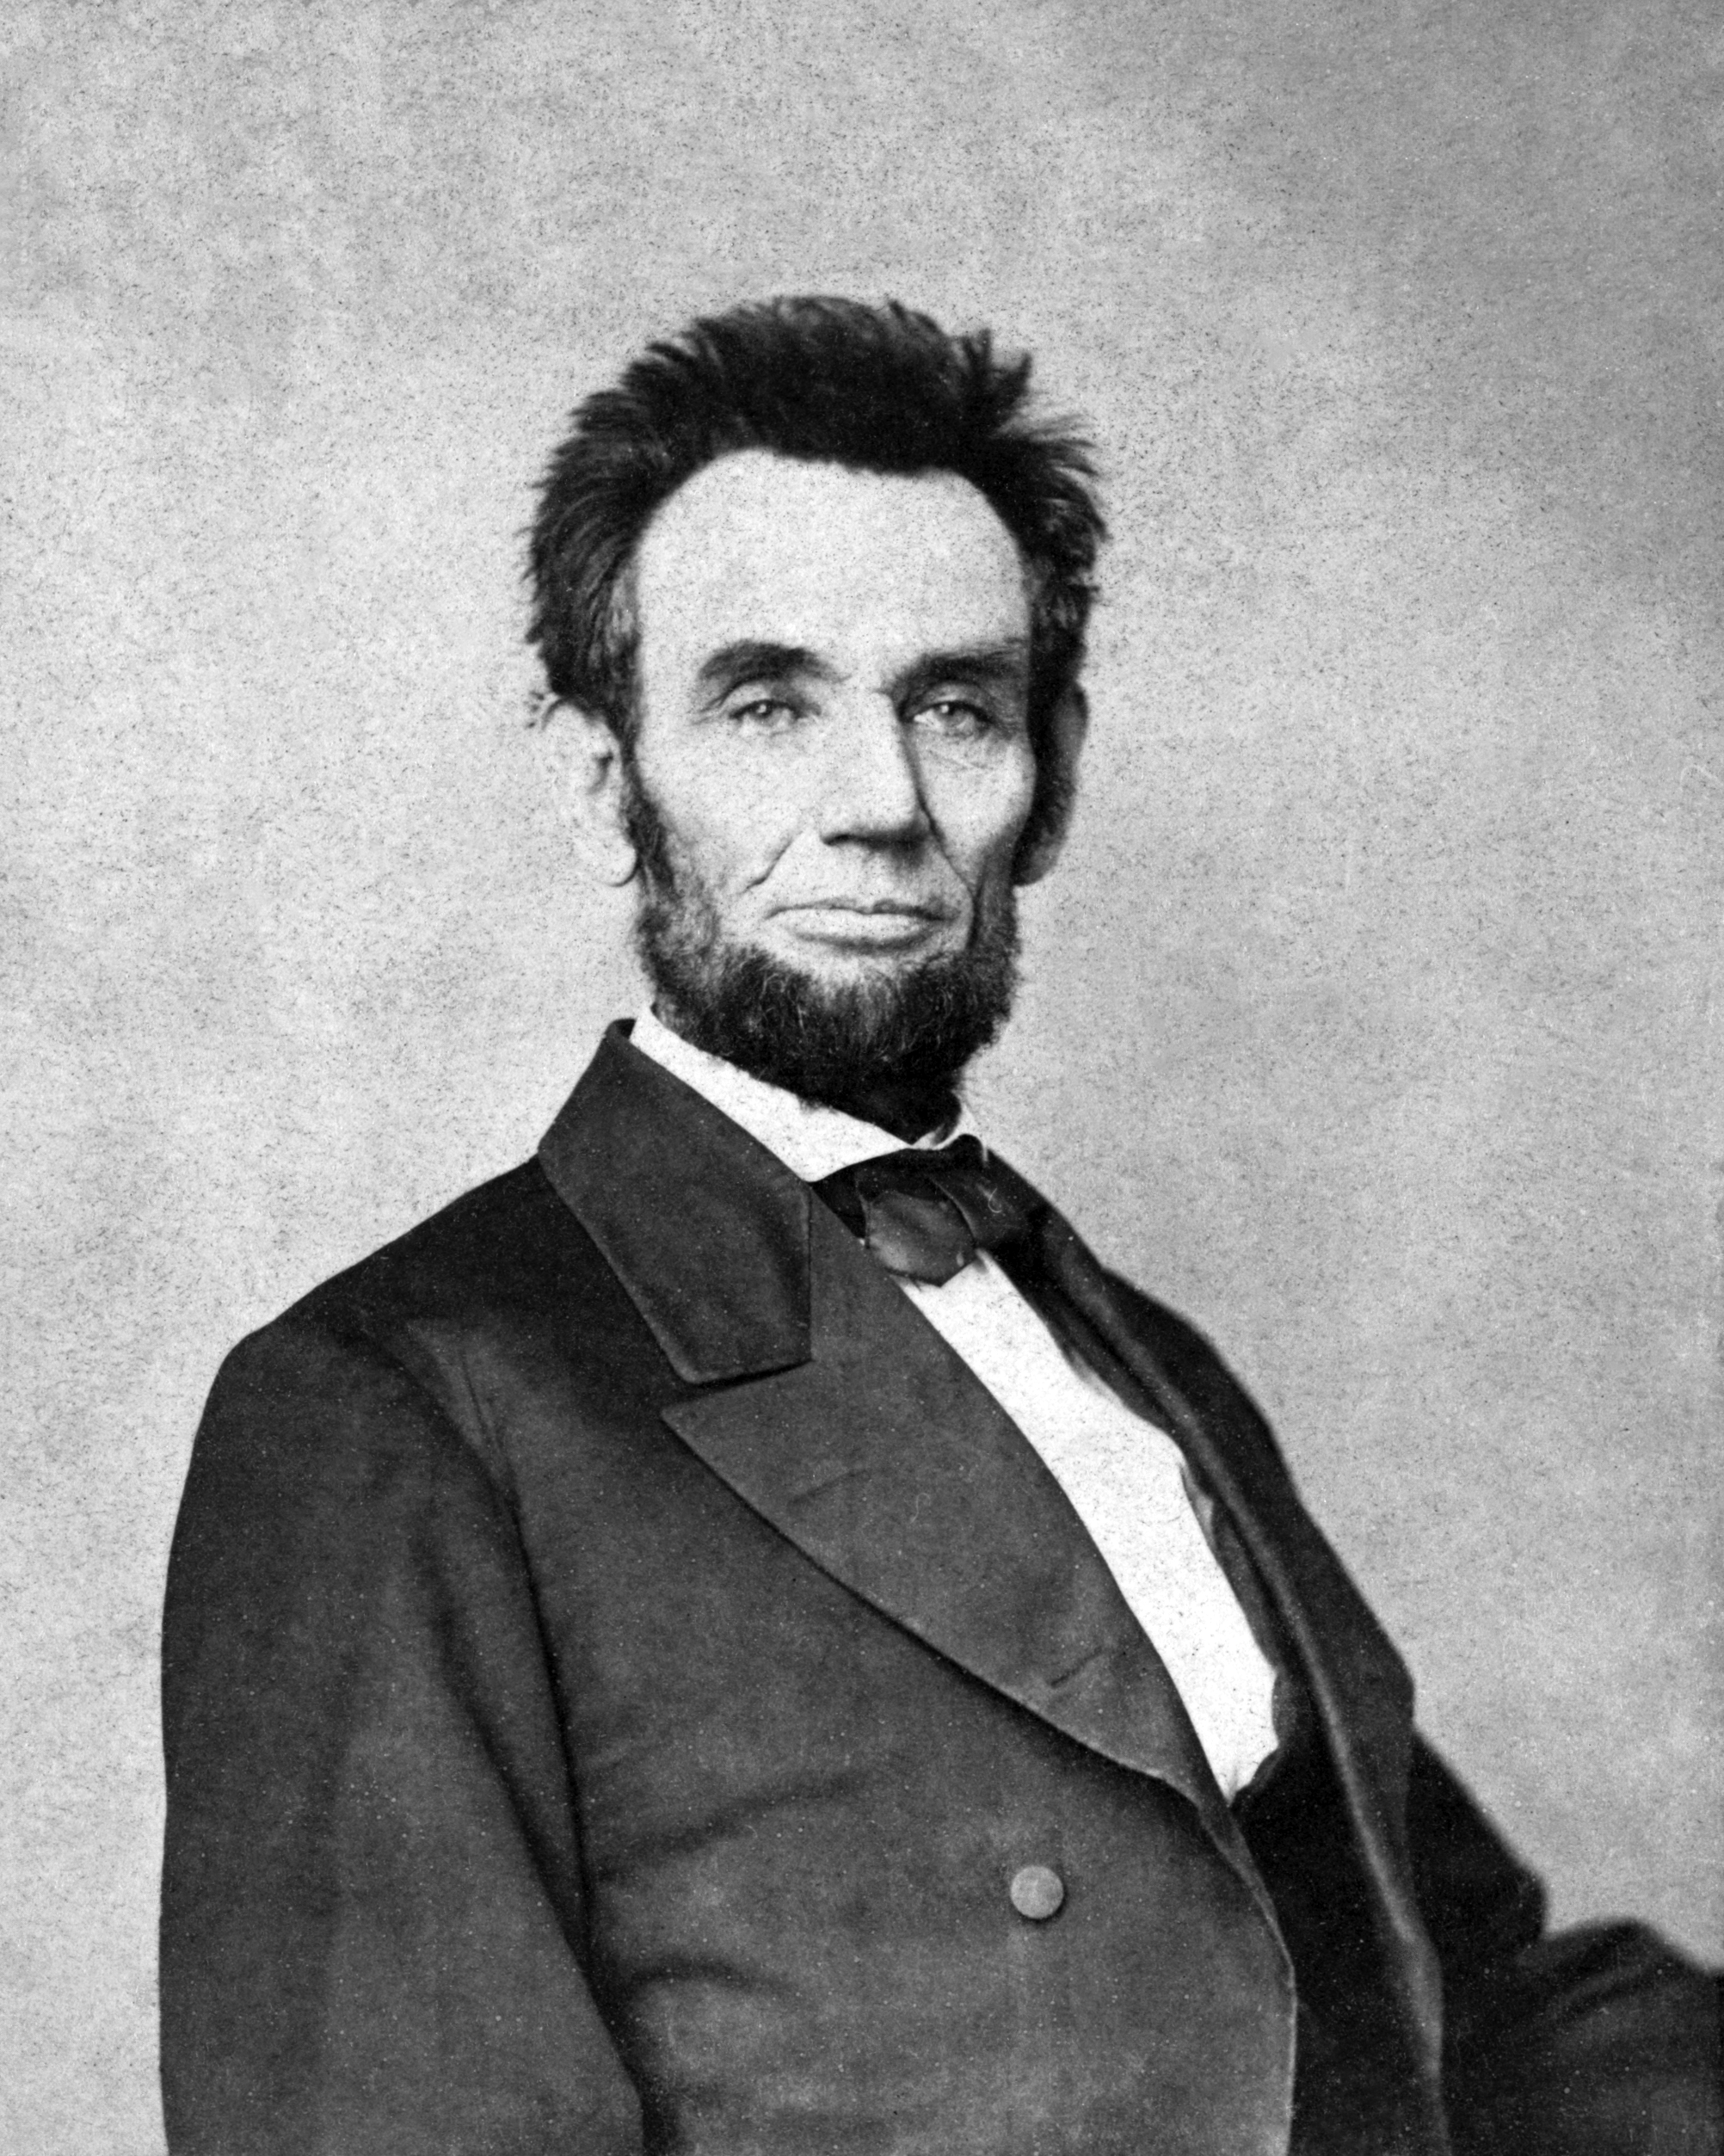 an analysis of the american history and a conparison of the figures of abraham lincoln and jefferson